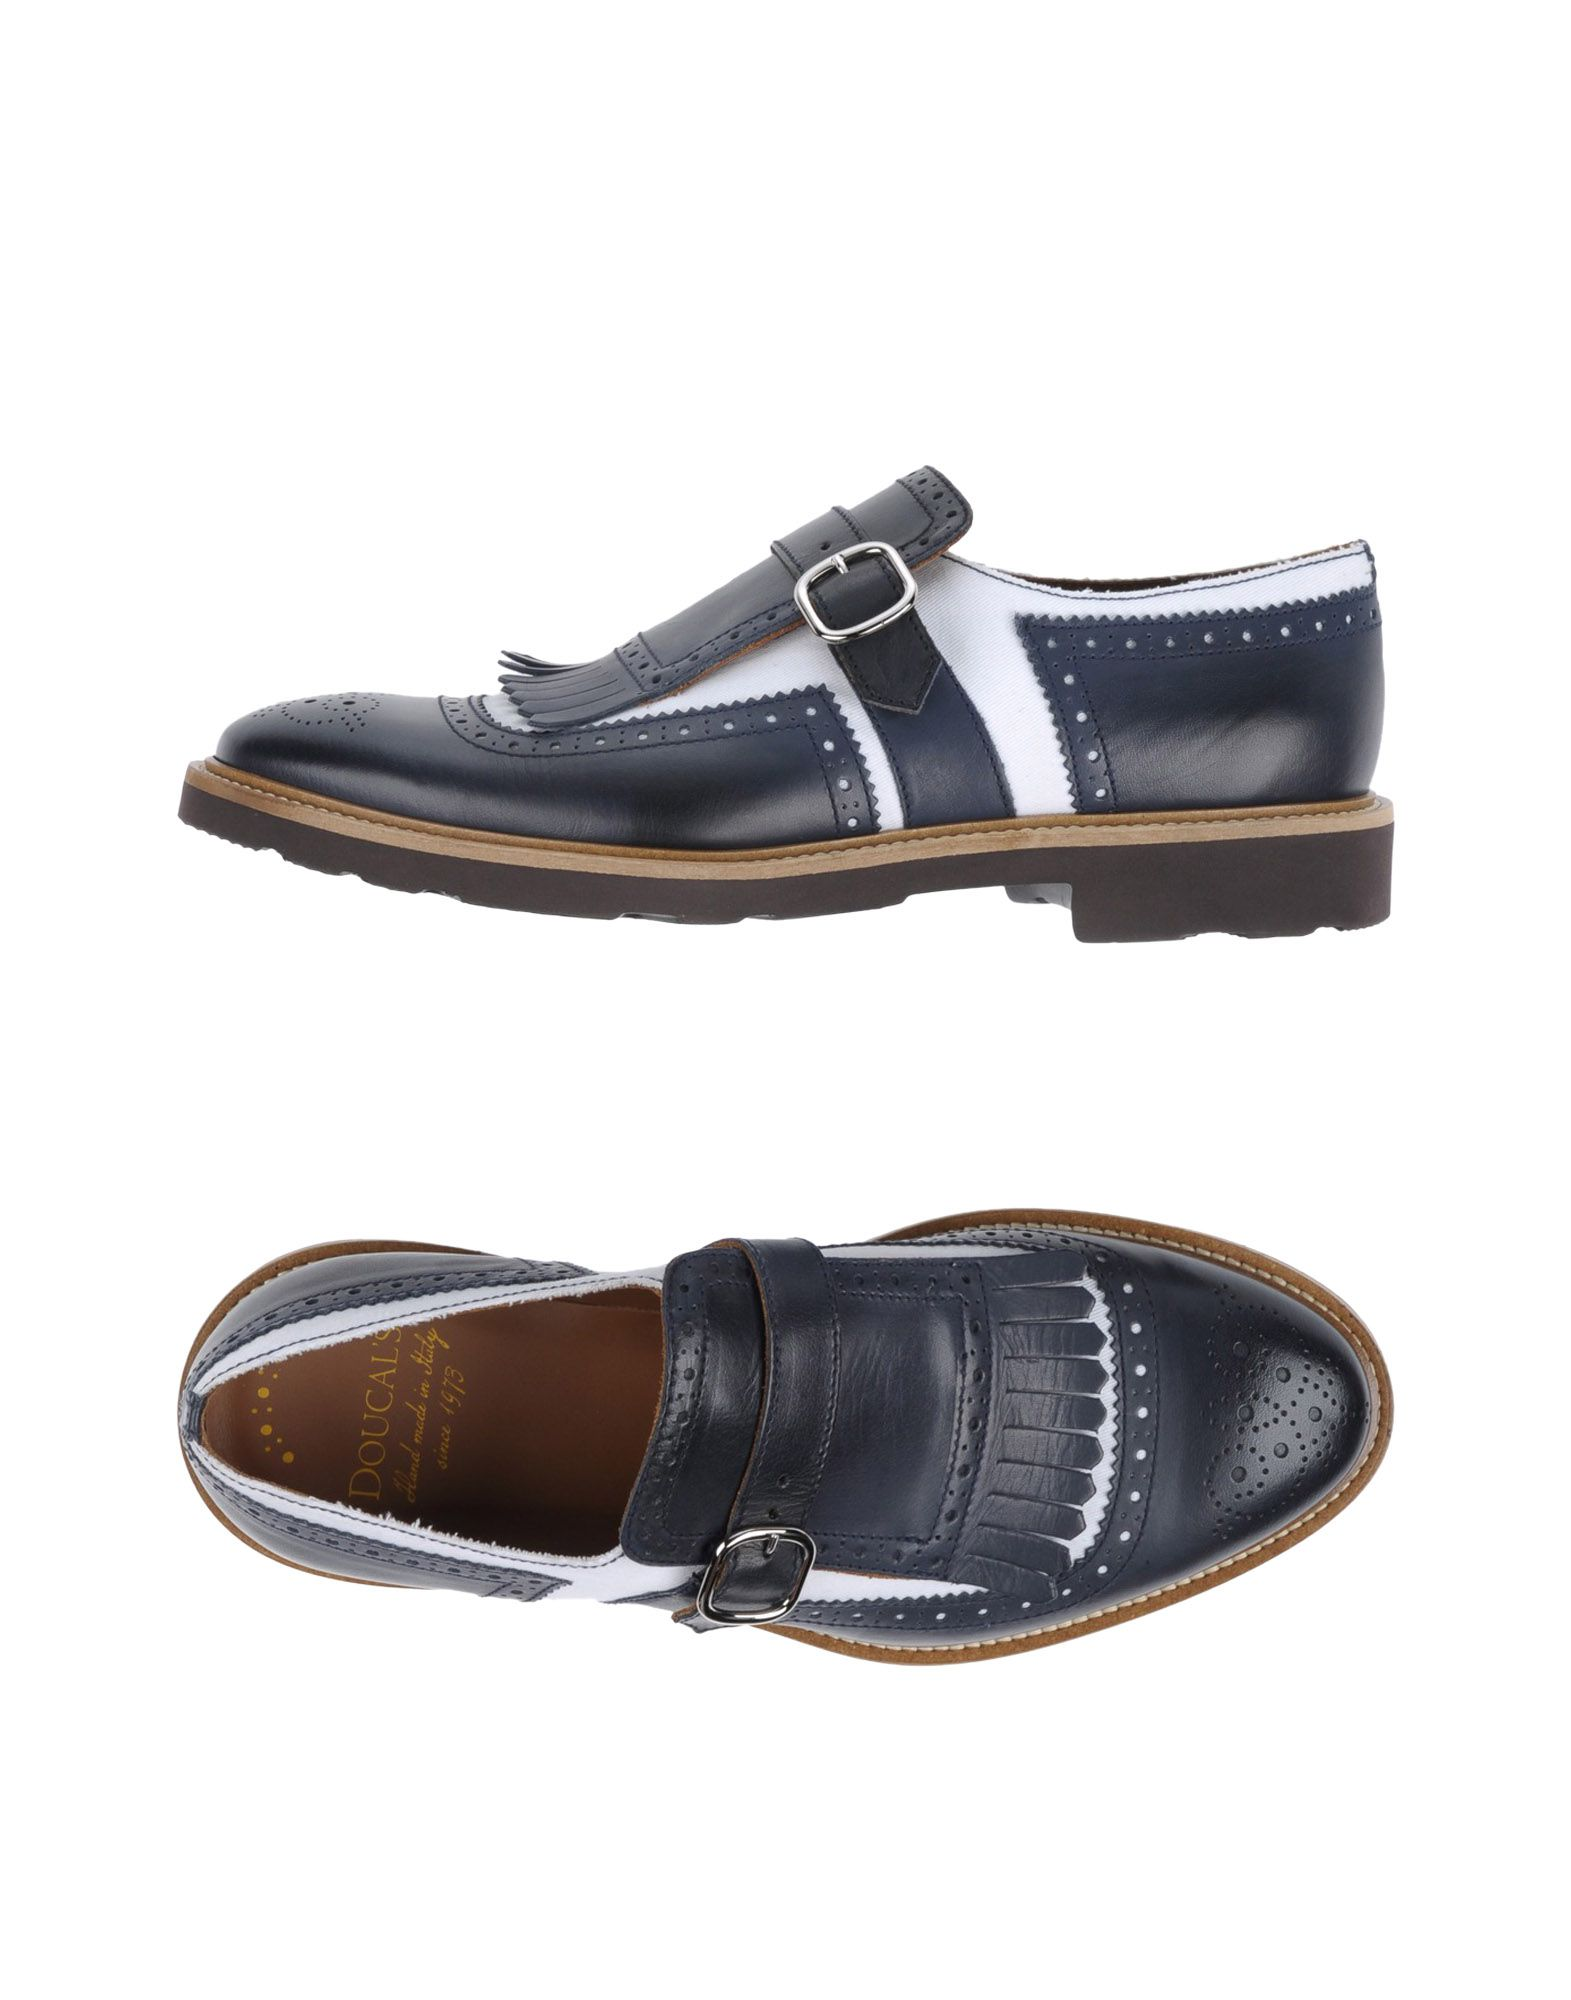 Moda Mocassino Doucal's Uomo - 11167774CV